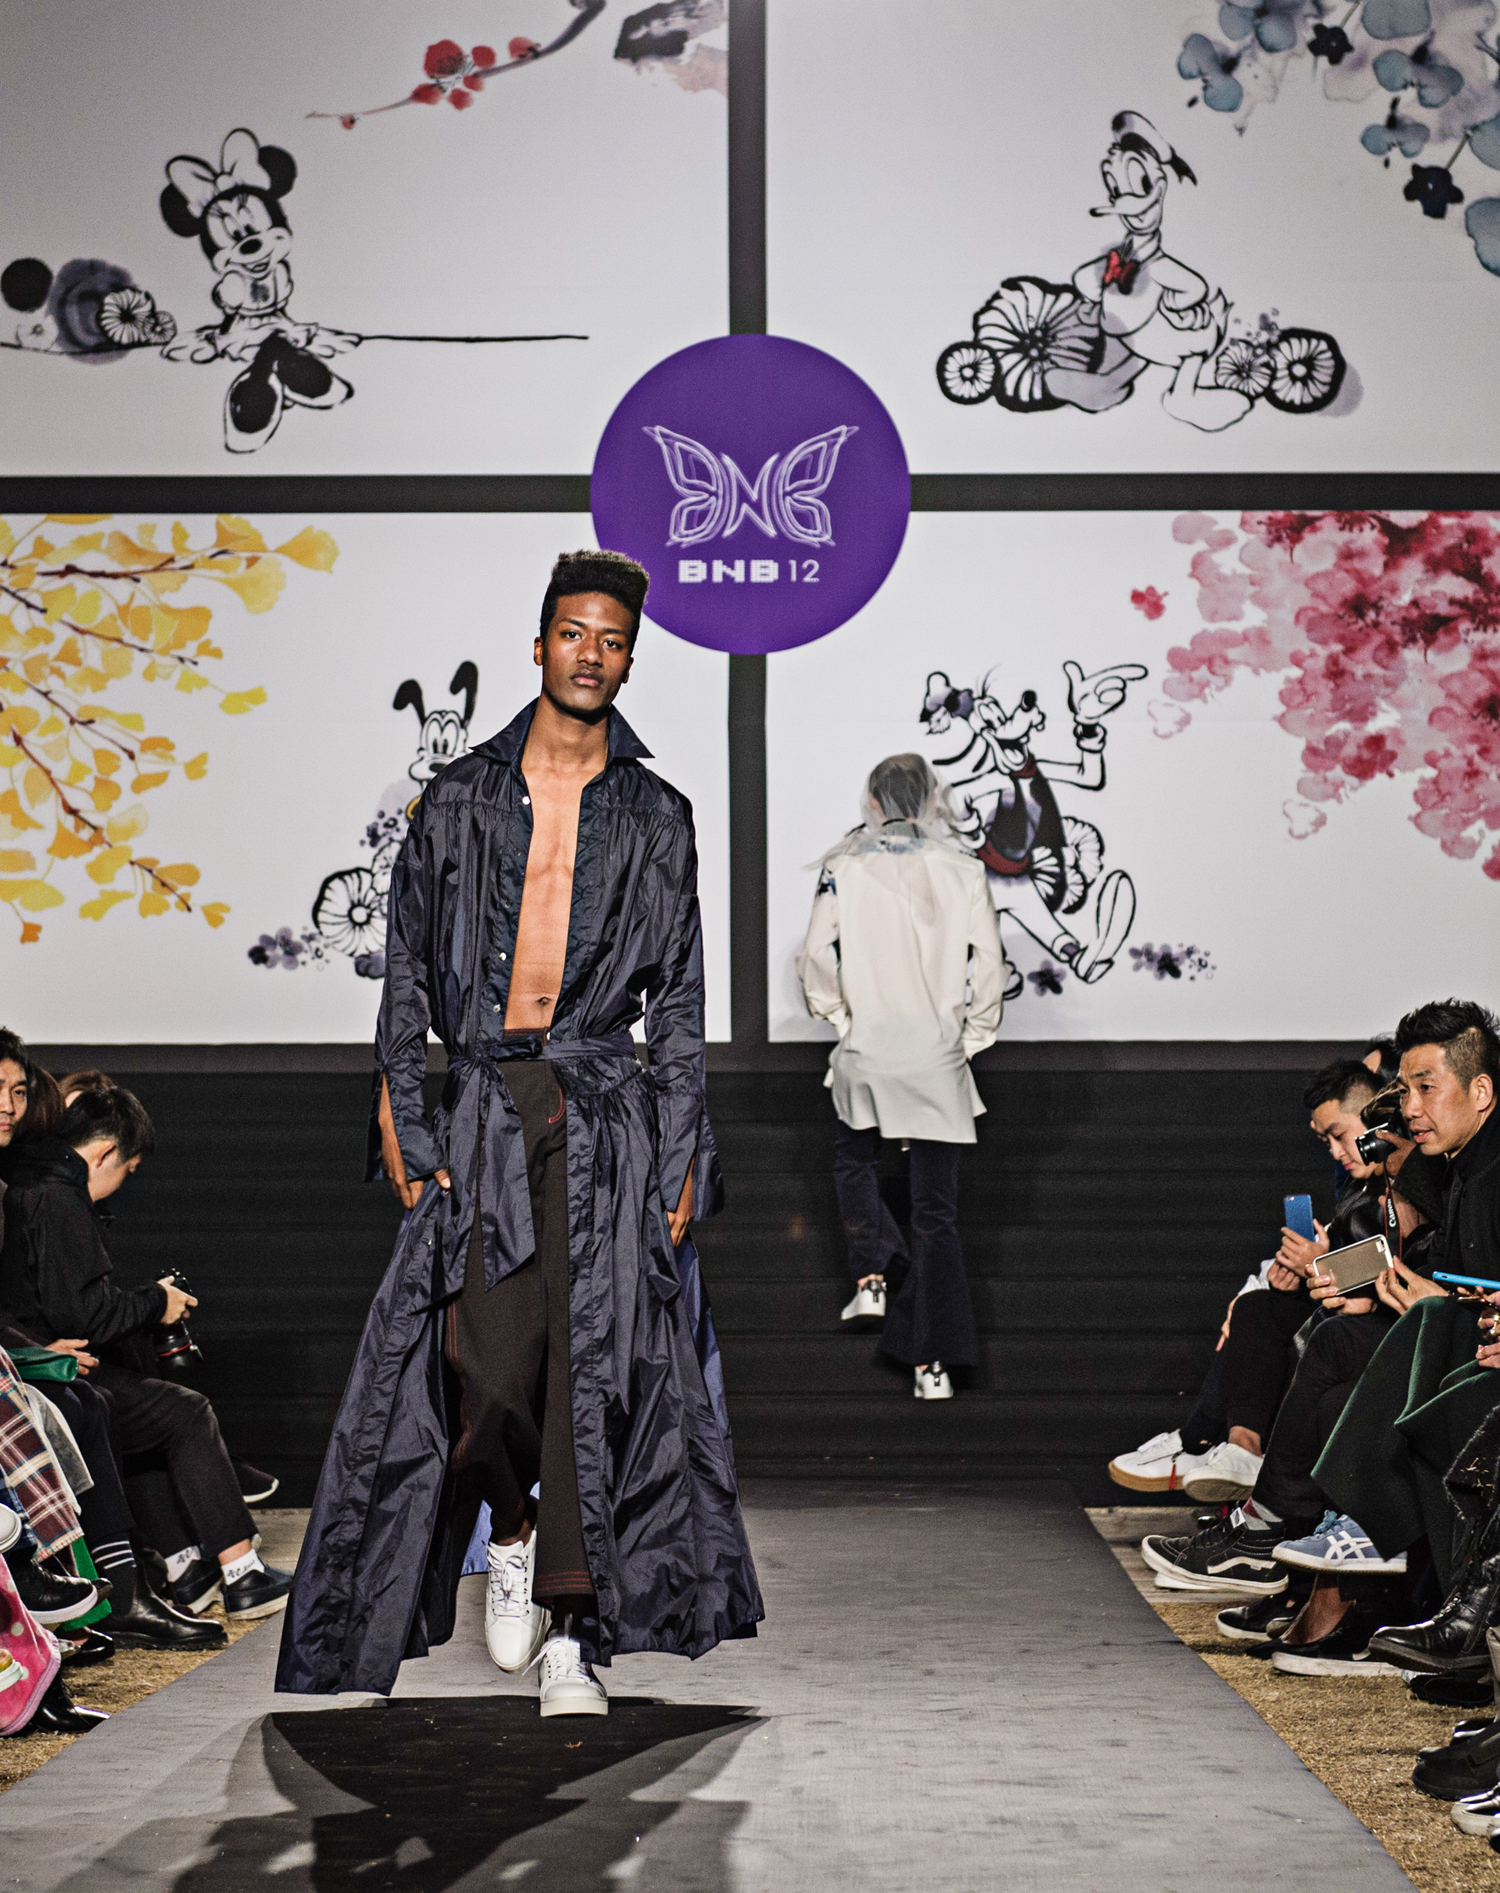 south korea s first black model ia al jazeera han who only speaks korean says many people assume he s a foreigner courtesy of bnb12 photograph by bnb12